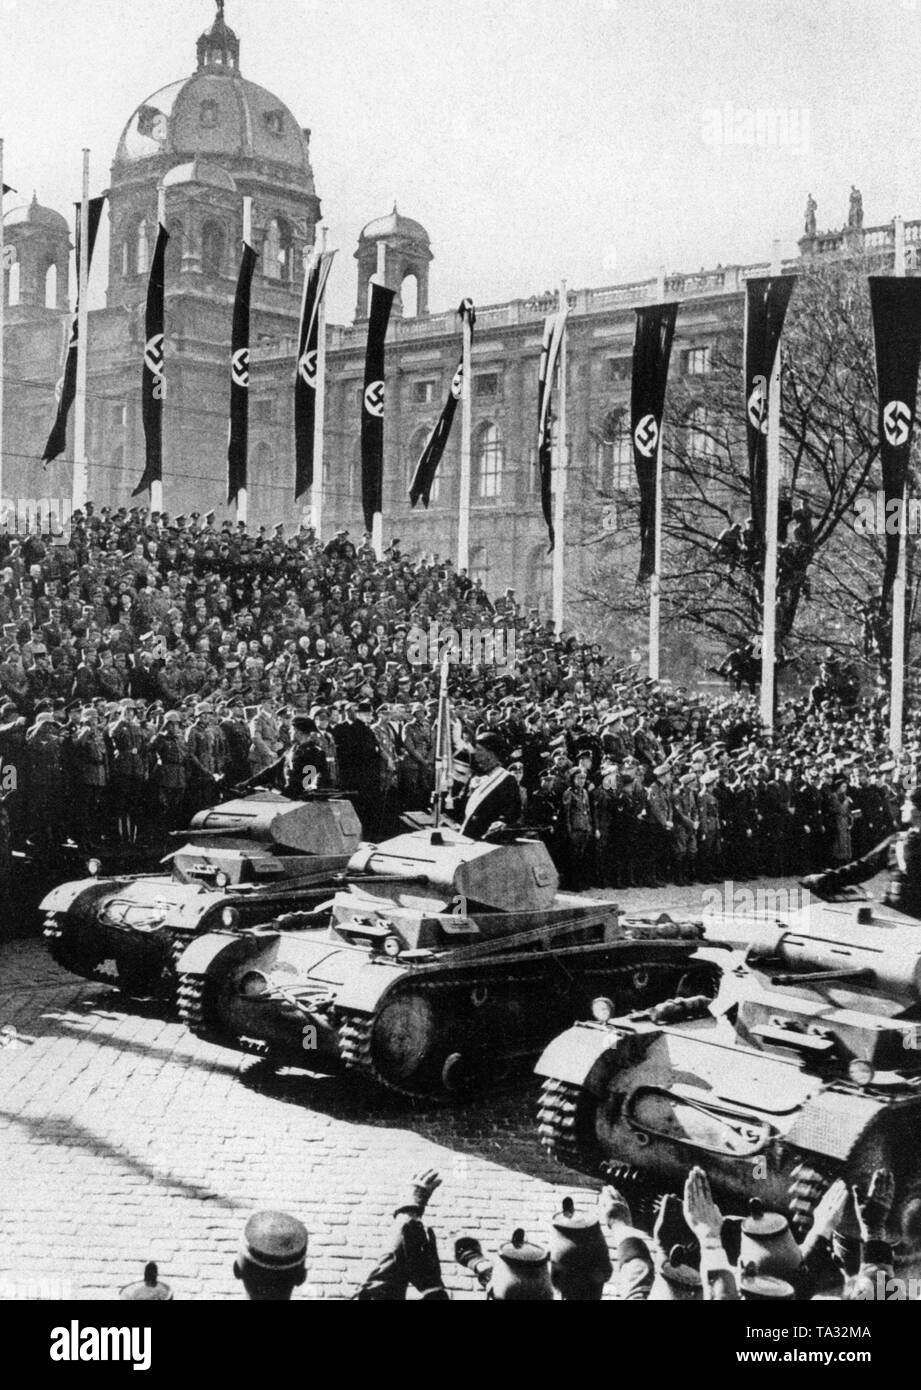 Tanks drive in front of Adolf Hitler on the Heldenplatz in Vienna. A military parade takes place on the occasion of the Anschluss (annexation) of Austria to the German Reich. Around Hitler stand prominent German and Austrian generals. - Stock Image